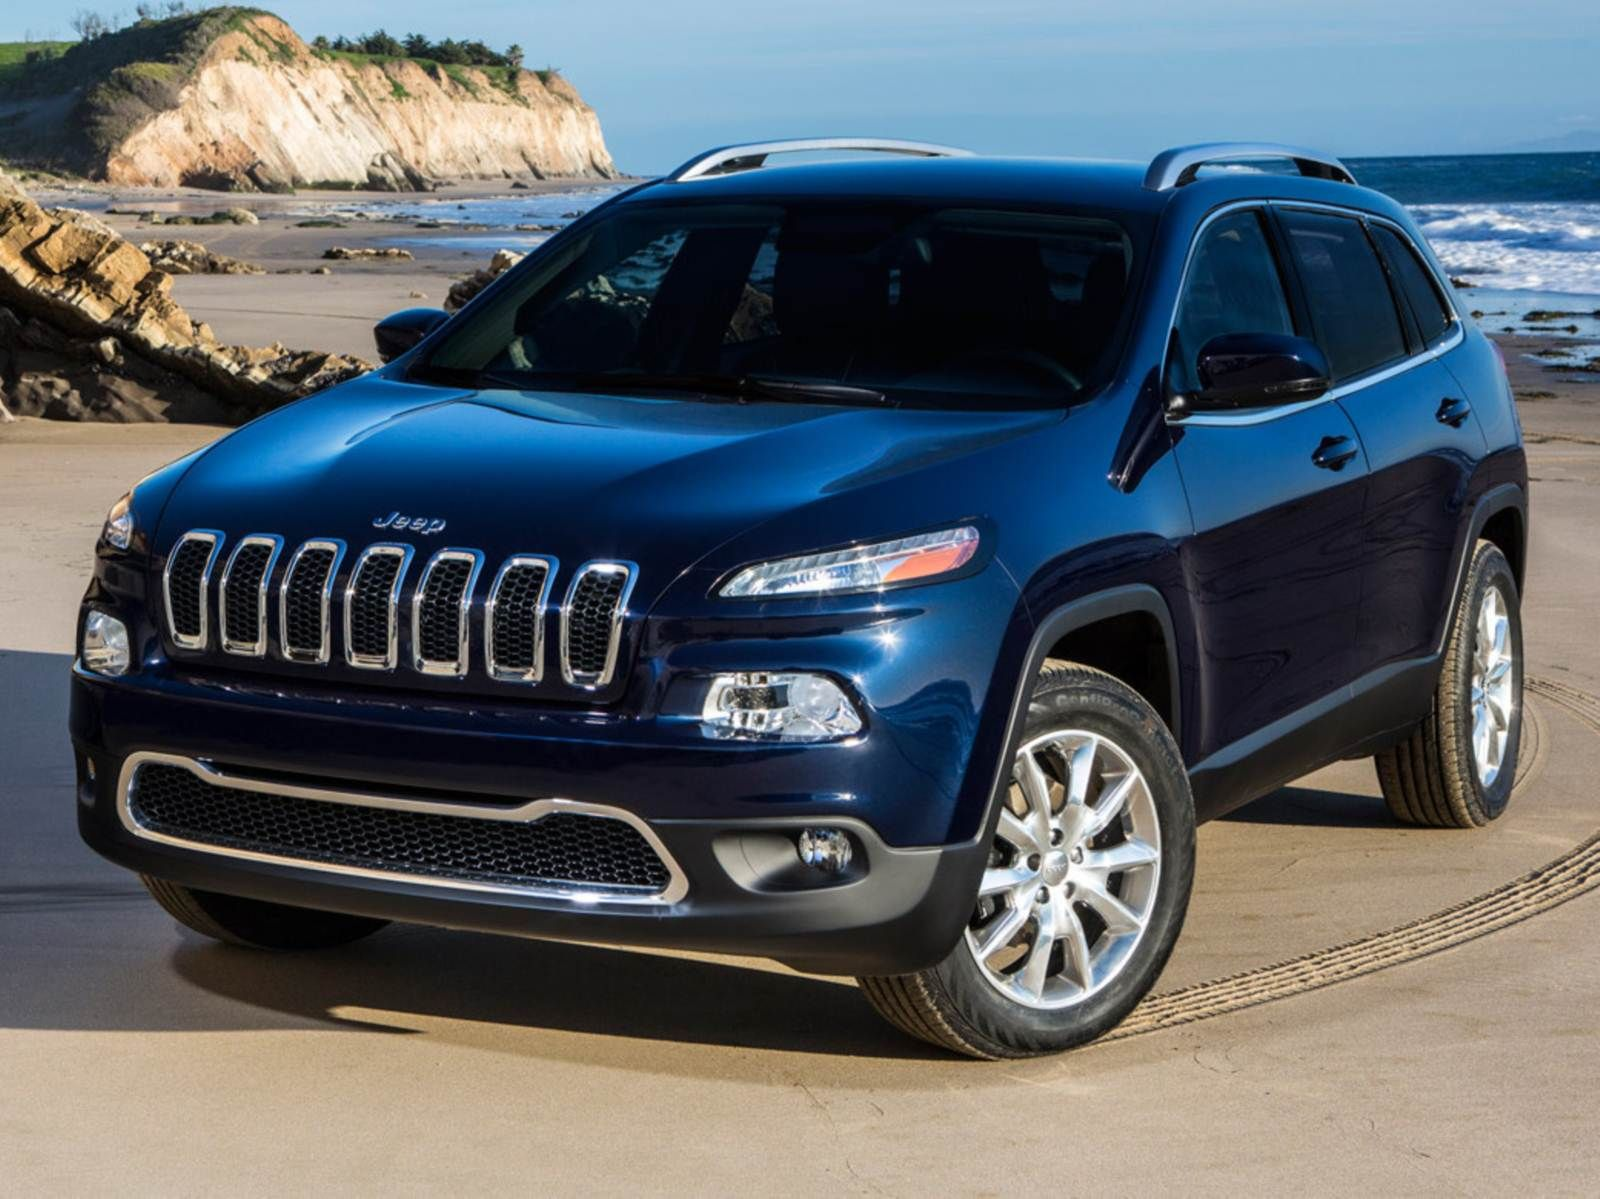 I am lovin this new Jeep Cherokee 2014 very classy Jeep